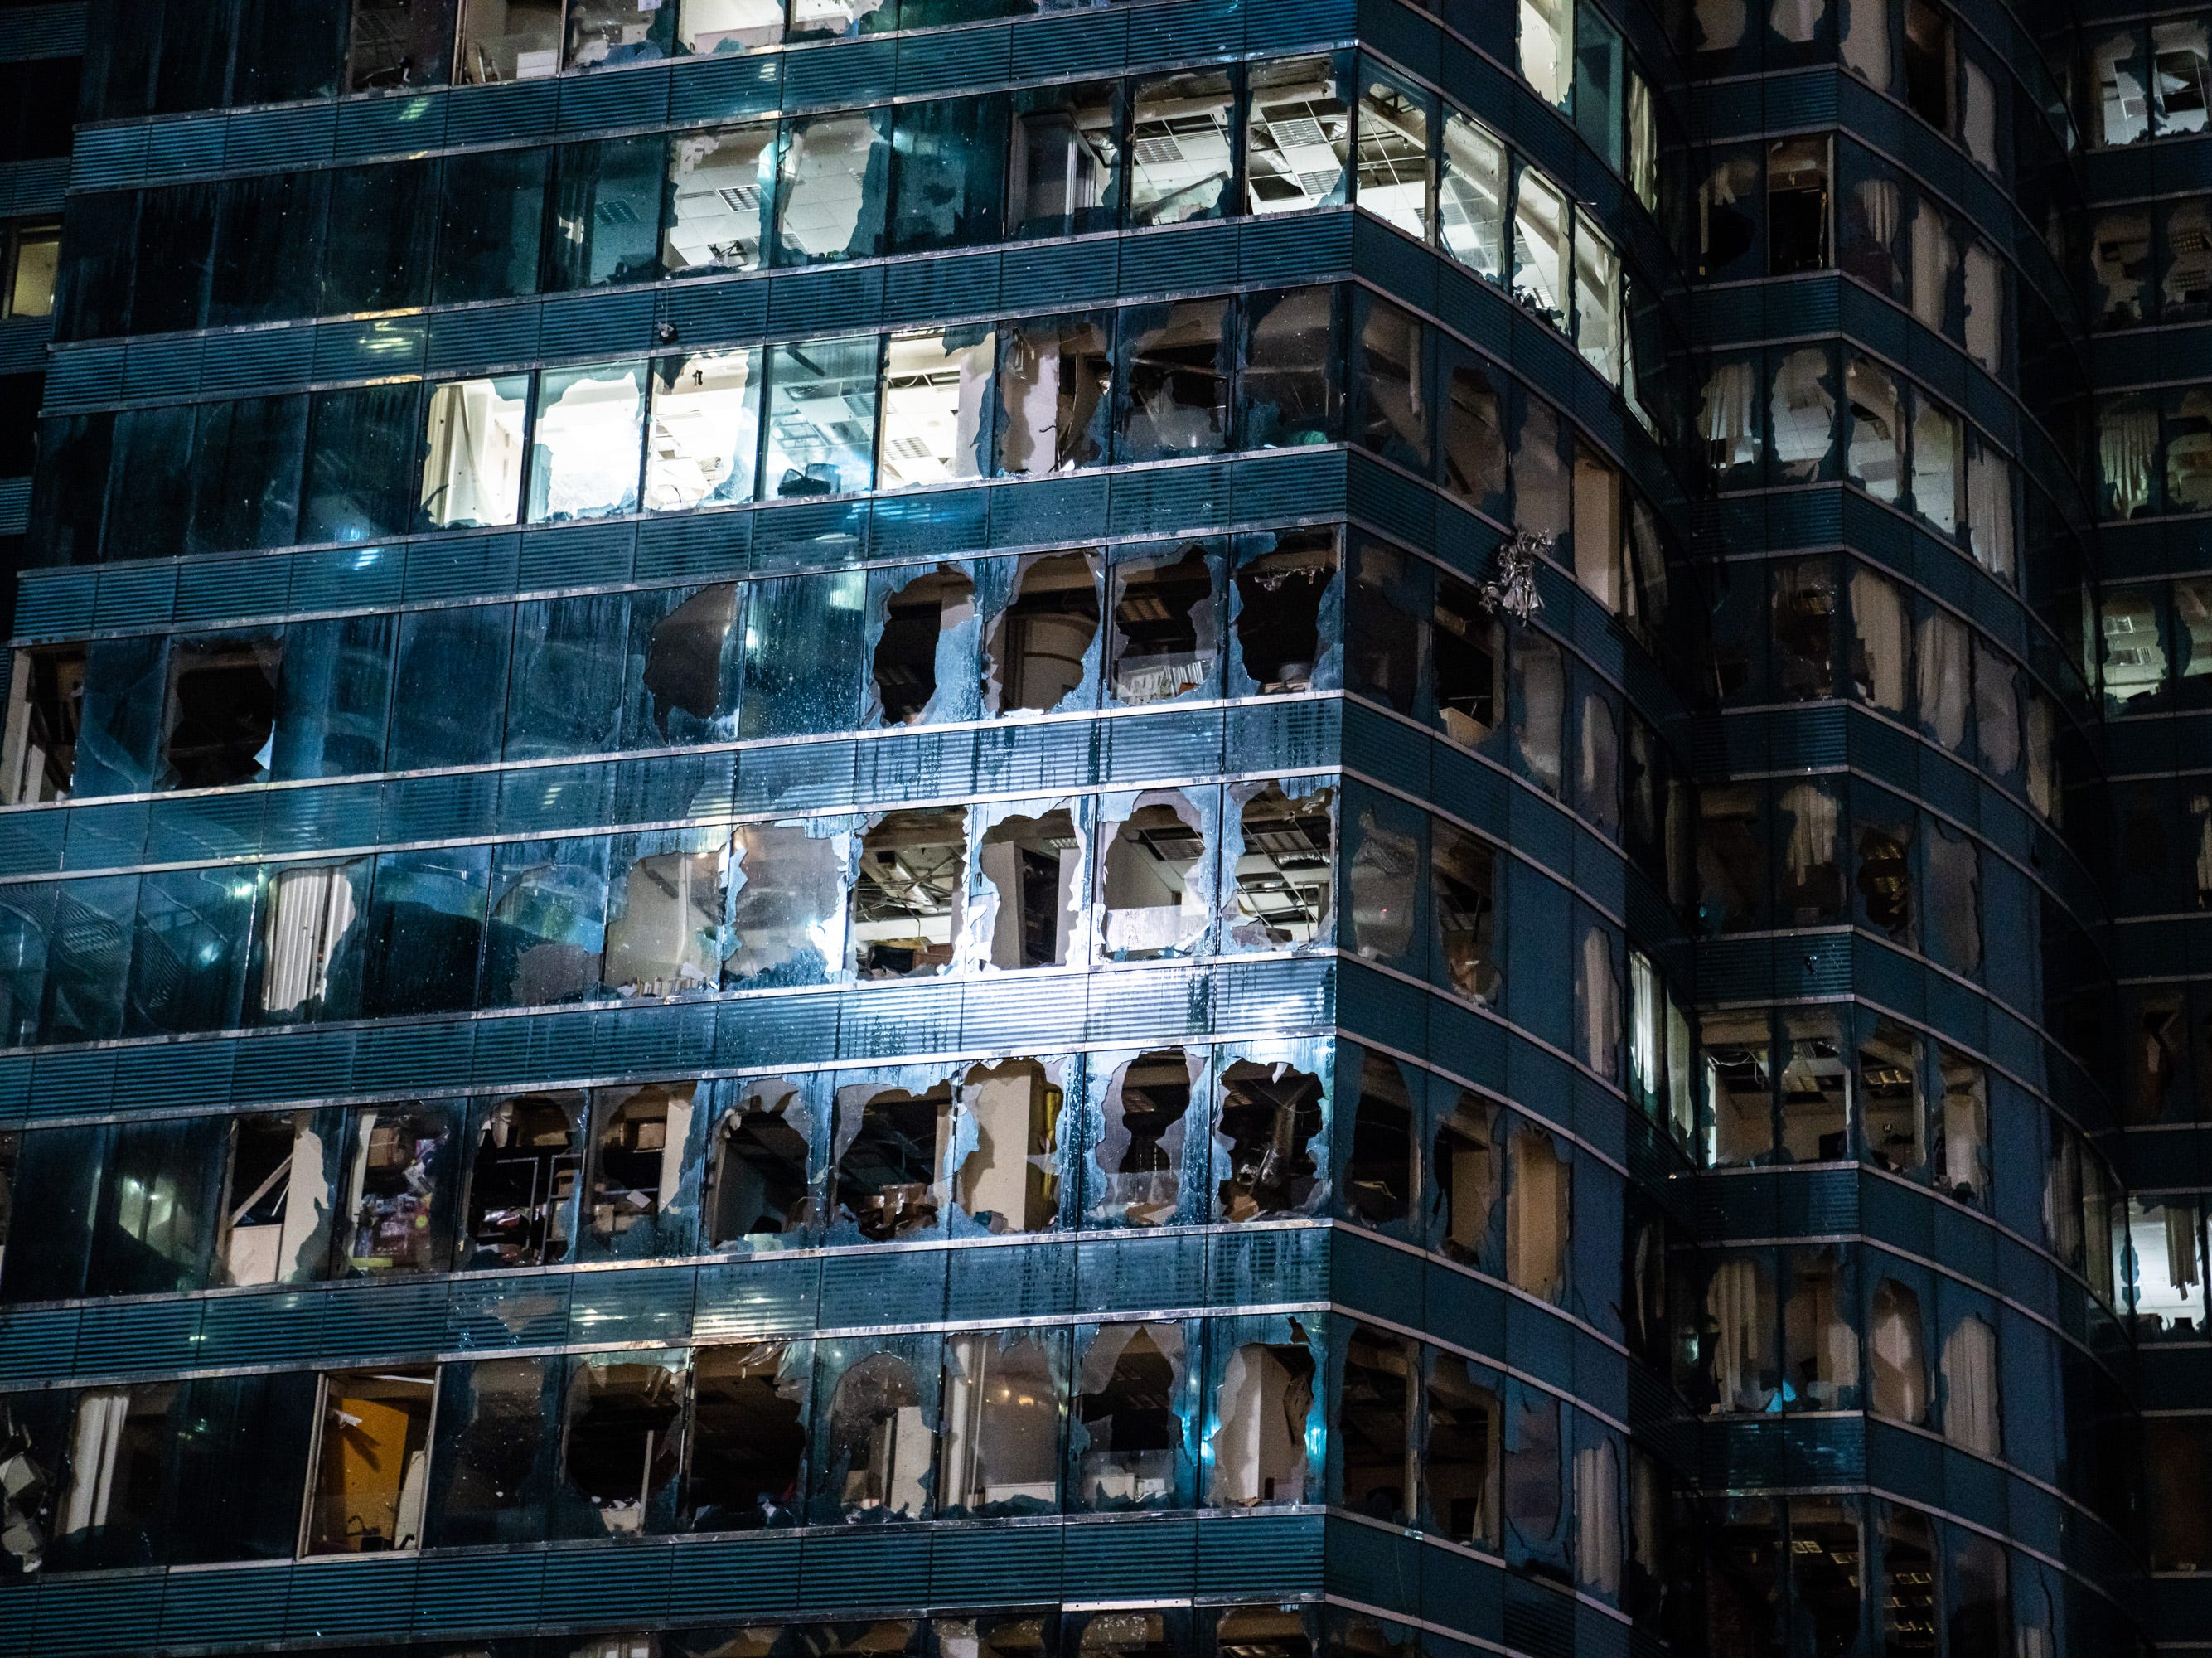 Windows of commercial building damaged by typhoon on Sept. 16, 2018 in Hong Kong. City officials raised the storm alert to T10, it's highest level,as Typhoon Mangkhut landed on Hong Kong. The strongest tropical storm of the season so far with winds as fast as 200 kilometers per hour, Mangkhut has reportedly killed at least 25 people in the Philippines as it continues it's path towards southern China.